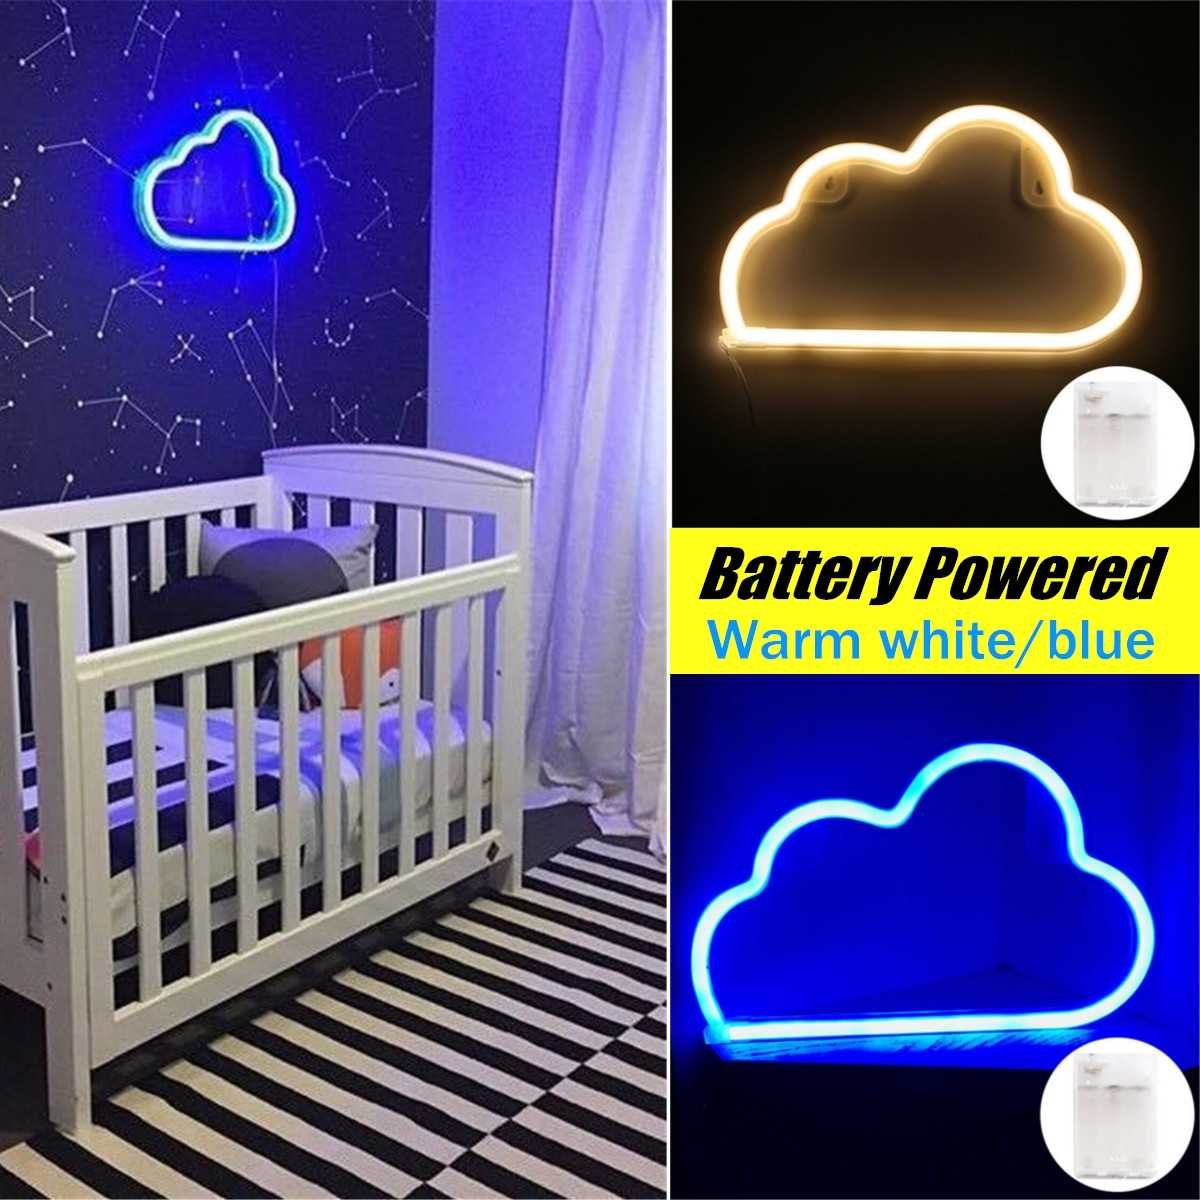 Plastic LED Neon Sign Night Light Cloud Design Wall Lamp Bedroom Bar Ornaments Christmas Party Decoration Holiday Lighting Gifts